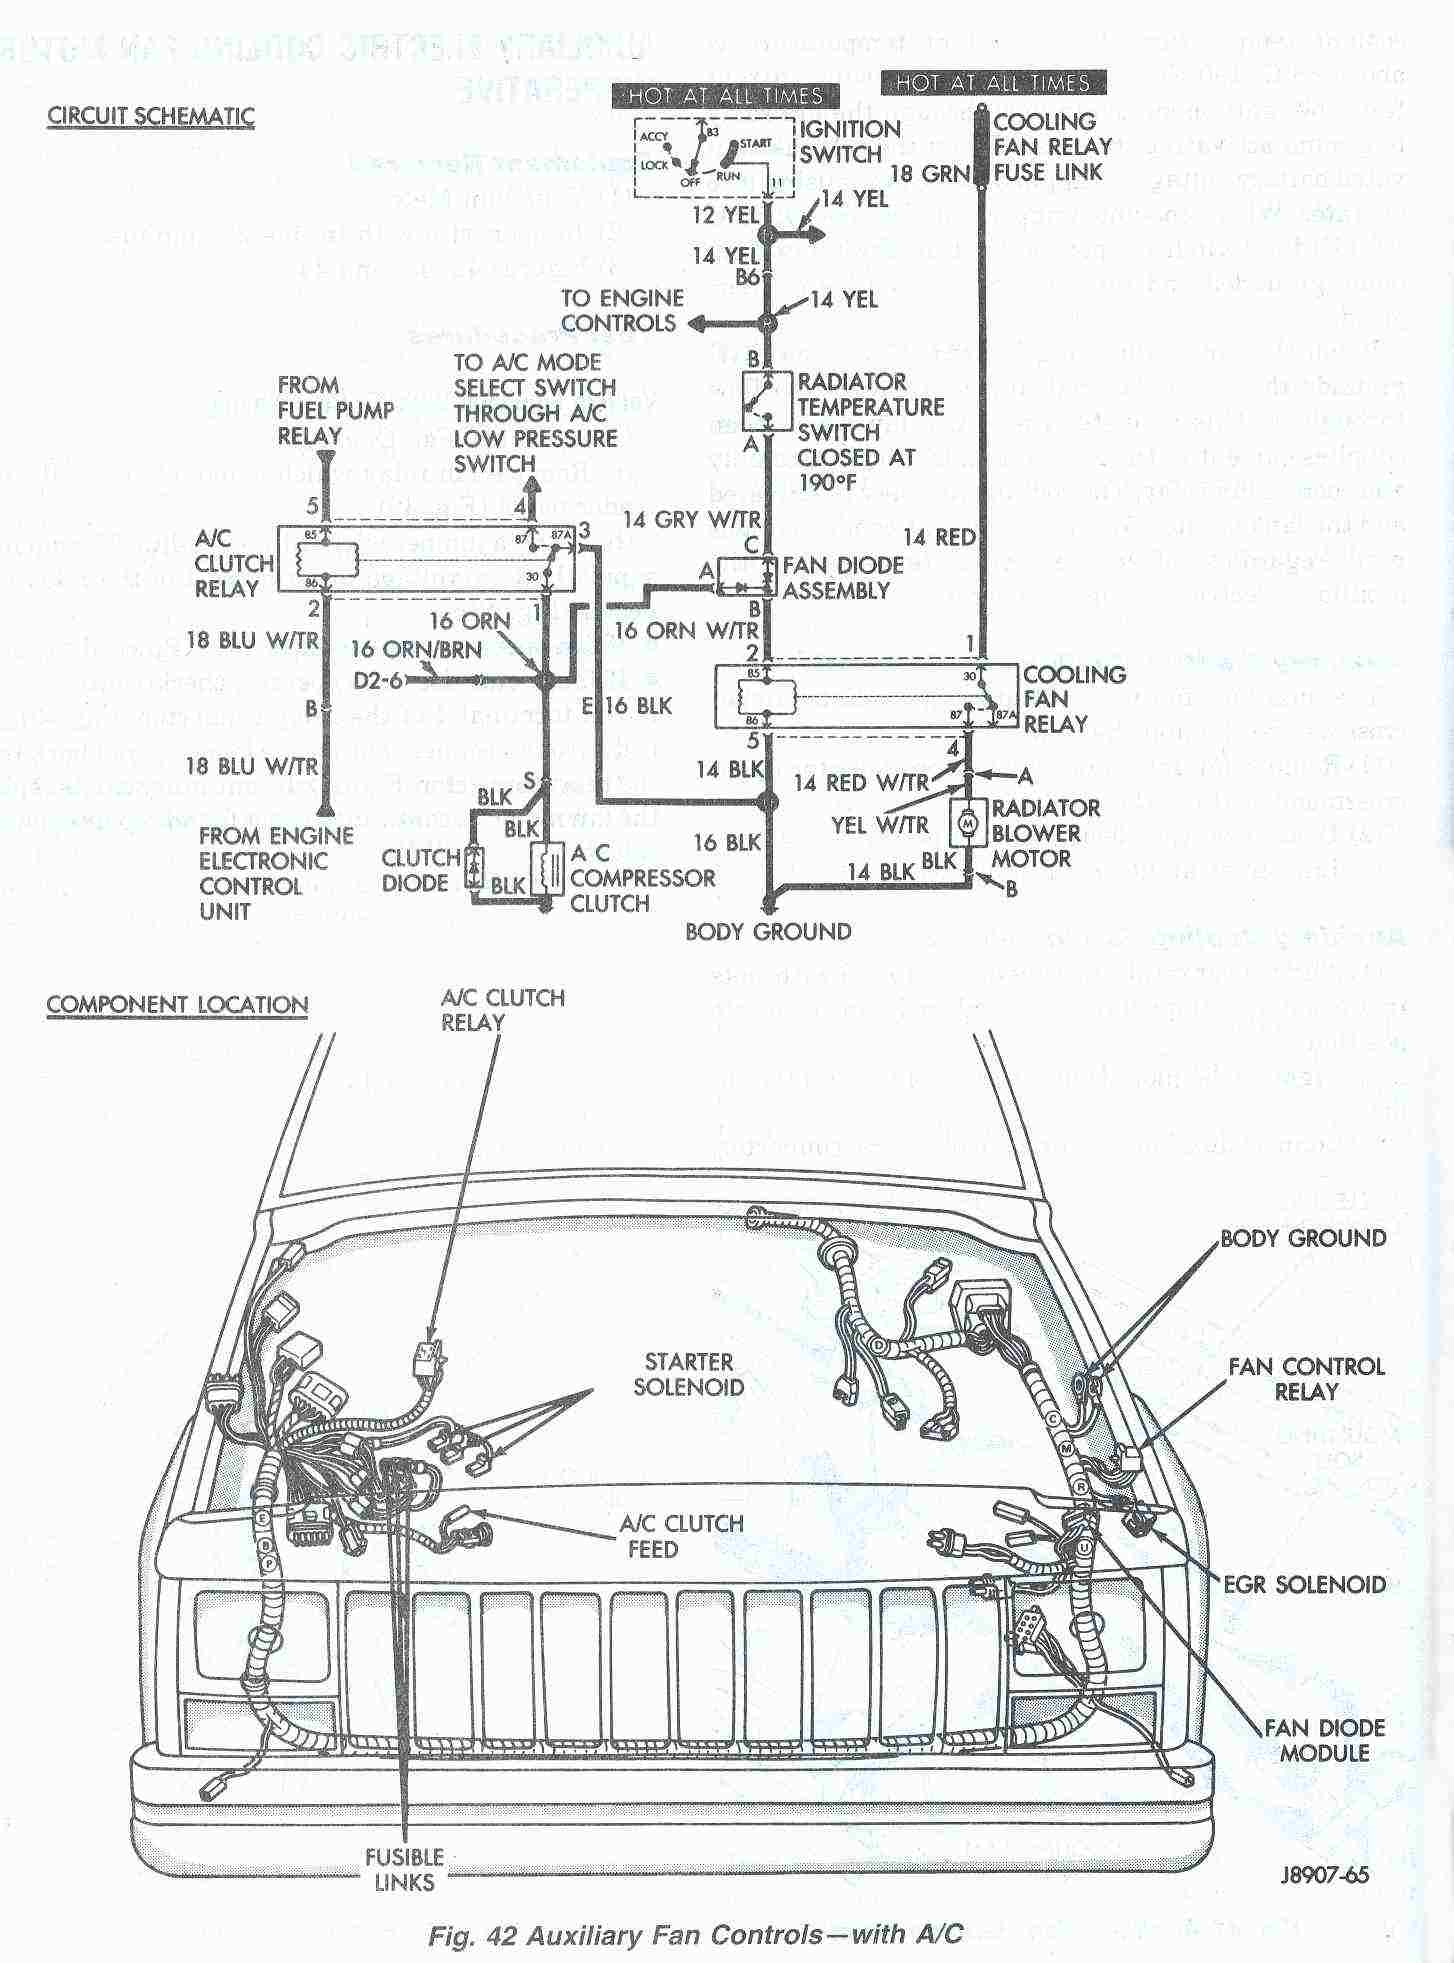 wiring diagram 1989 jeep cherokee wiring diagrams and schematics wiring diagram 89 jeep diagrams and schematics 2003 ford truck f250 super duty p u 4wd 6 0l turbo dsl ohv 8cyl